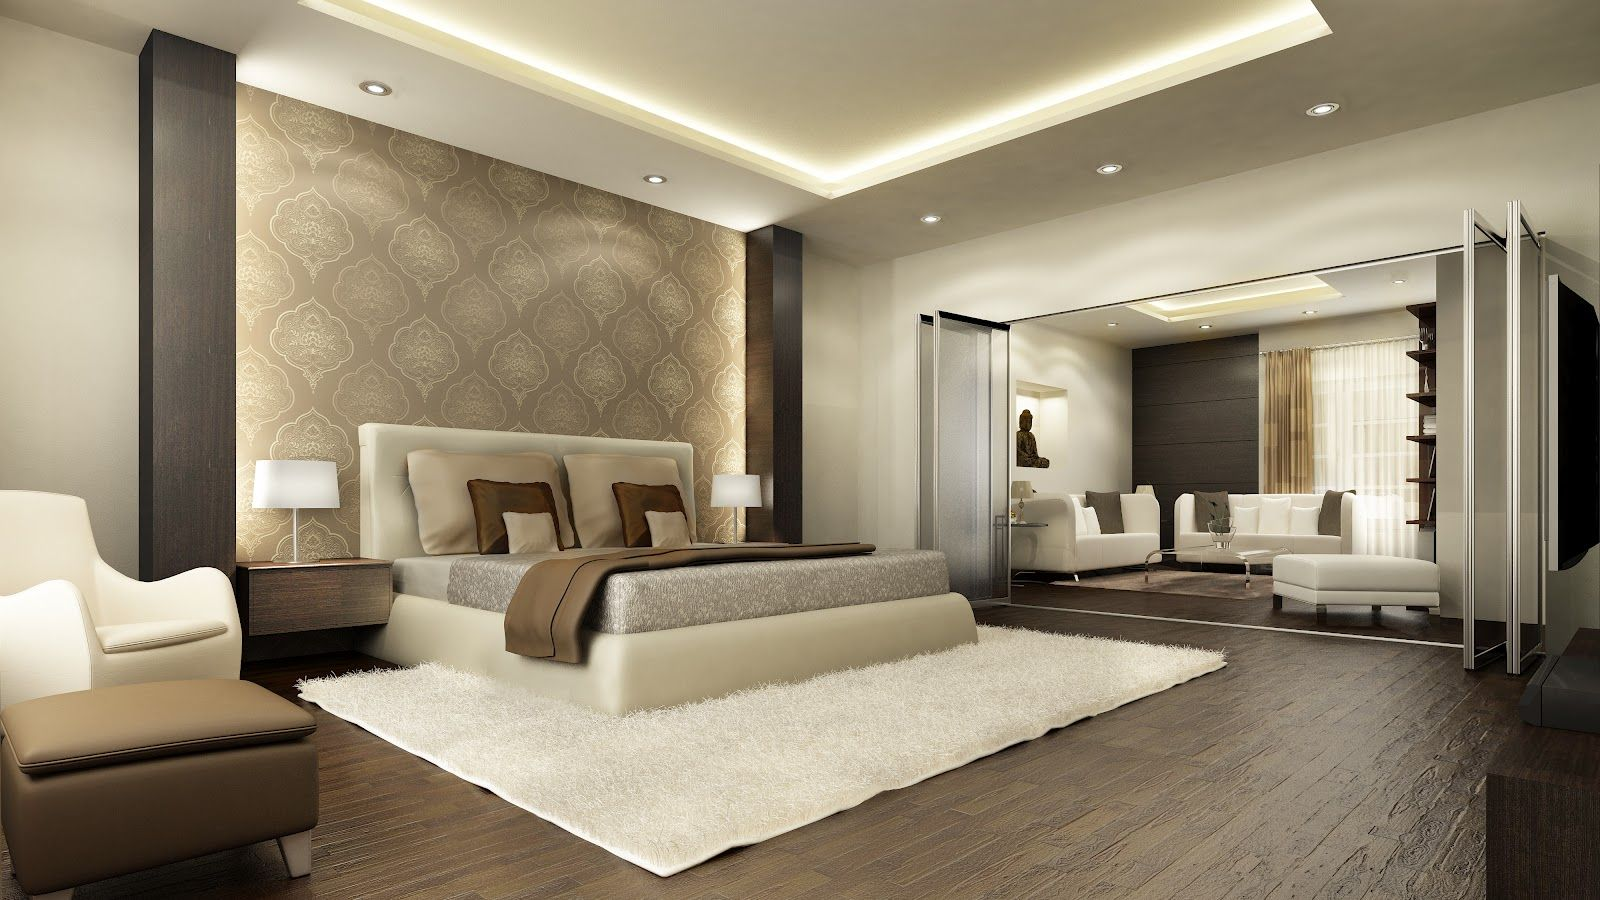 11 Awesome Master Bedroom Design Ideas   Part 3